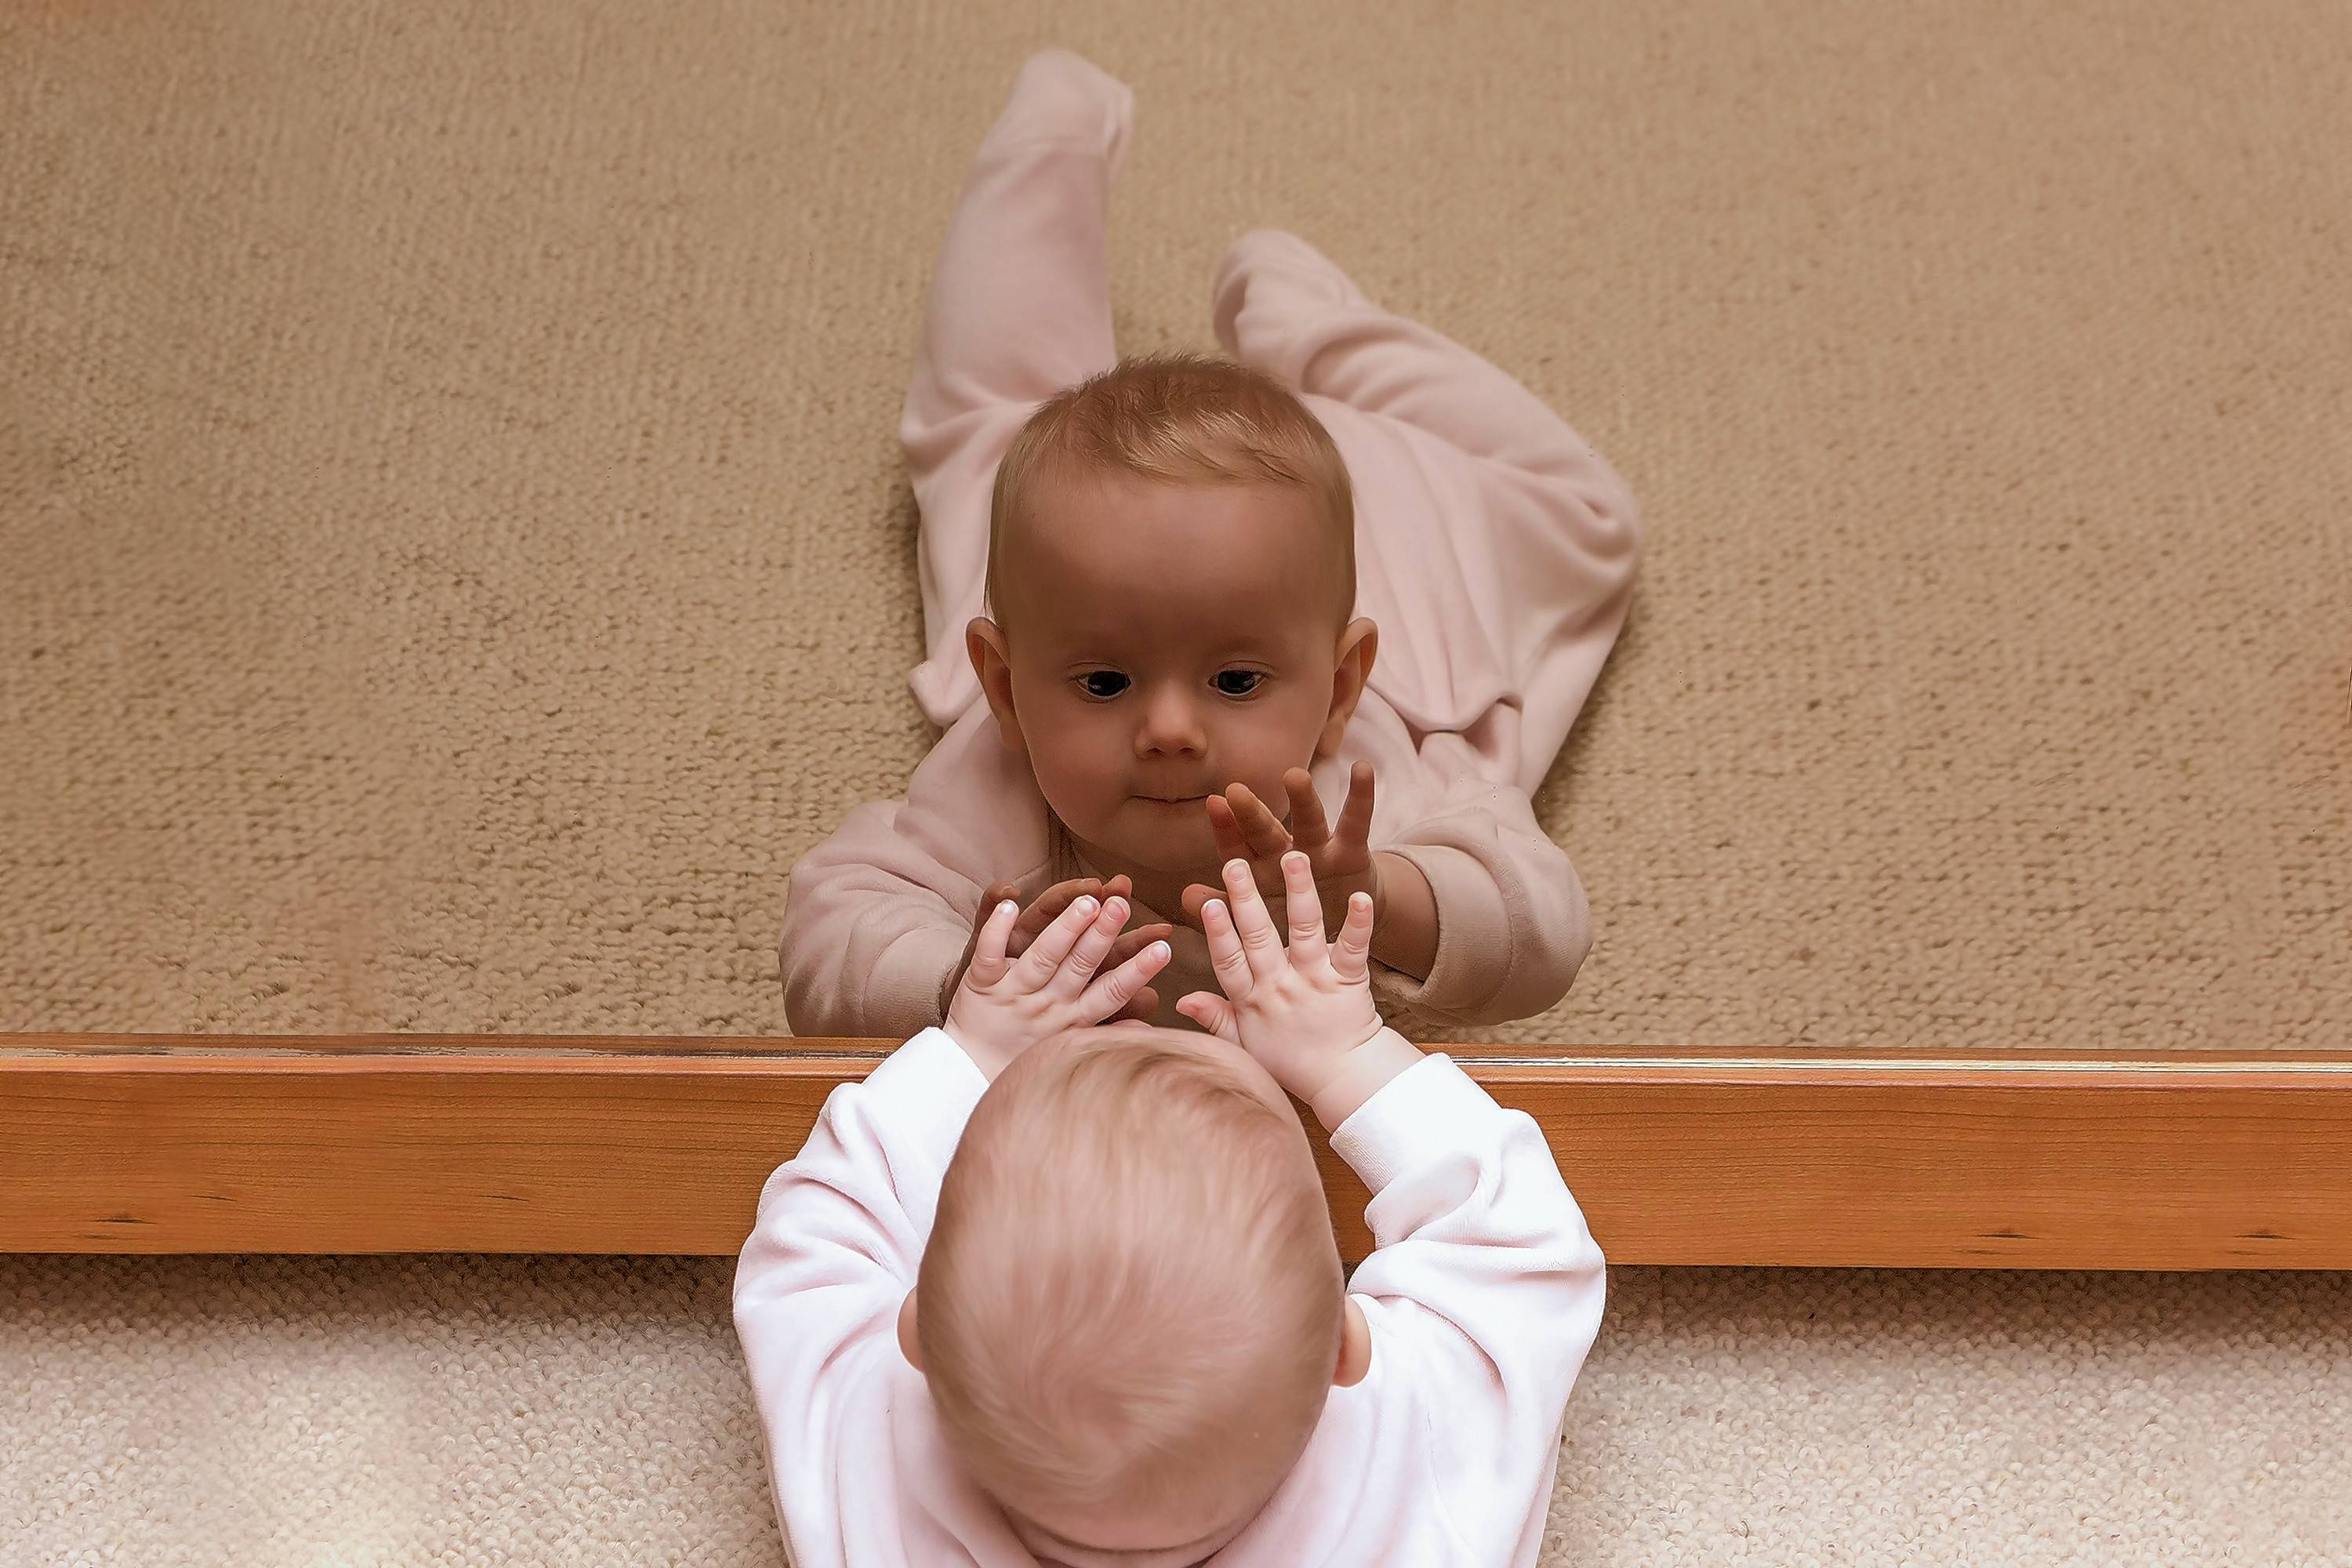 Between 6 to 9 months old, a baby begins to enjoy looking at herself in the mirror.